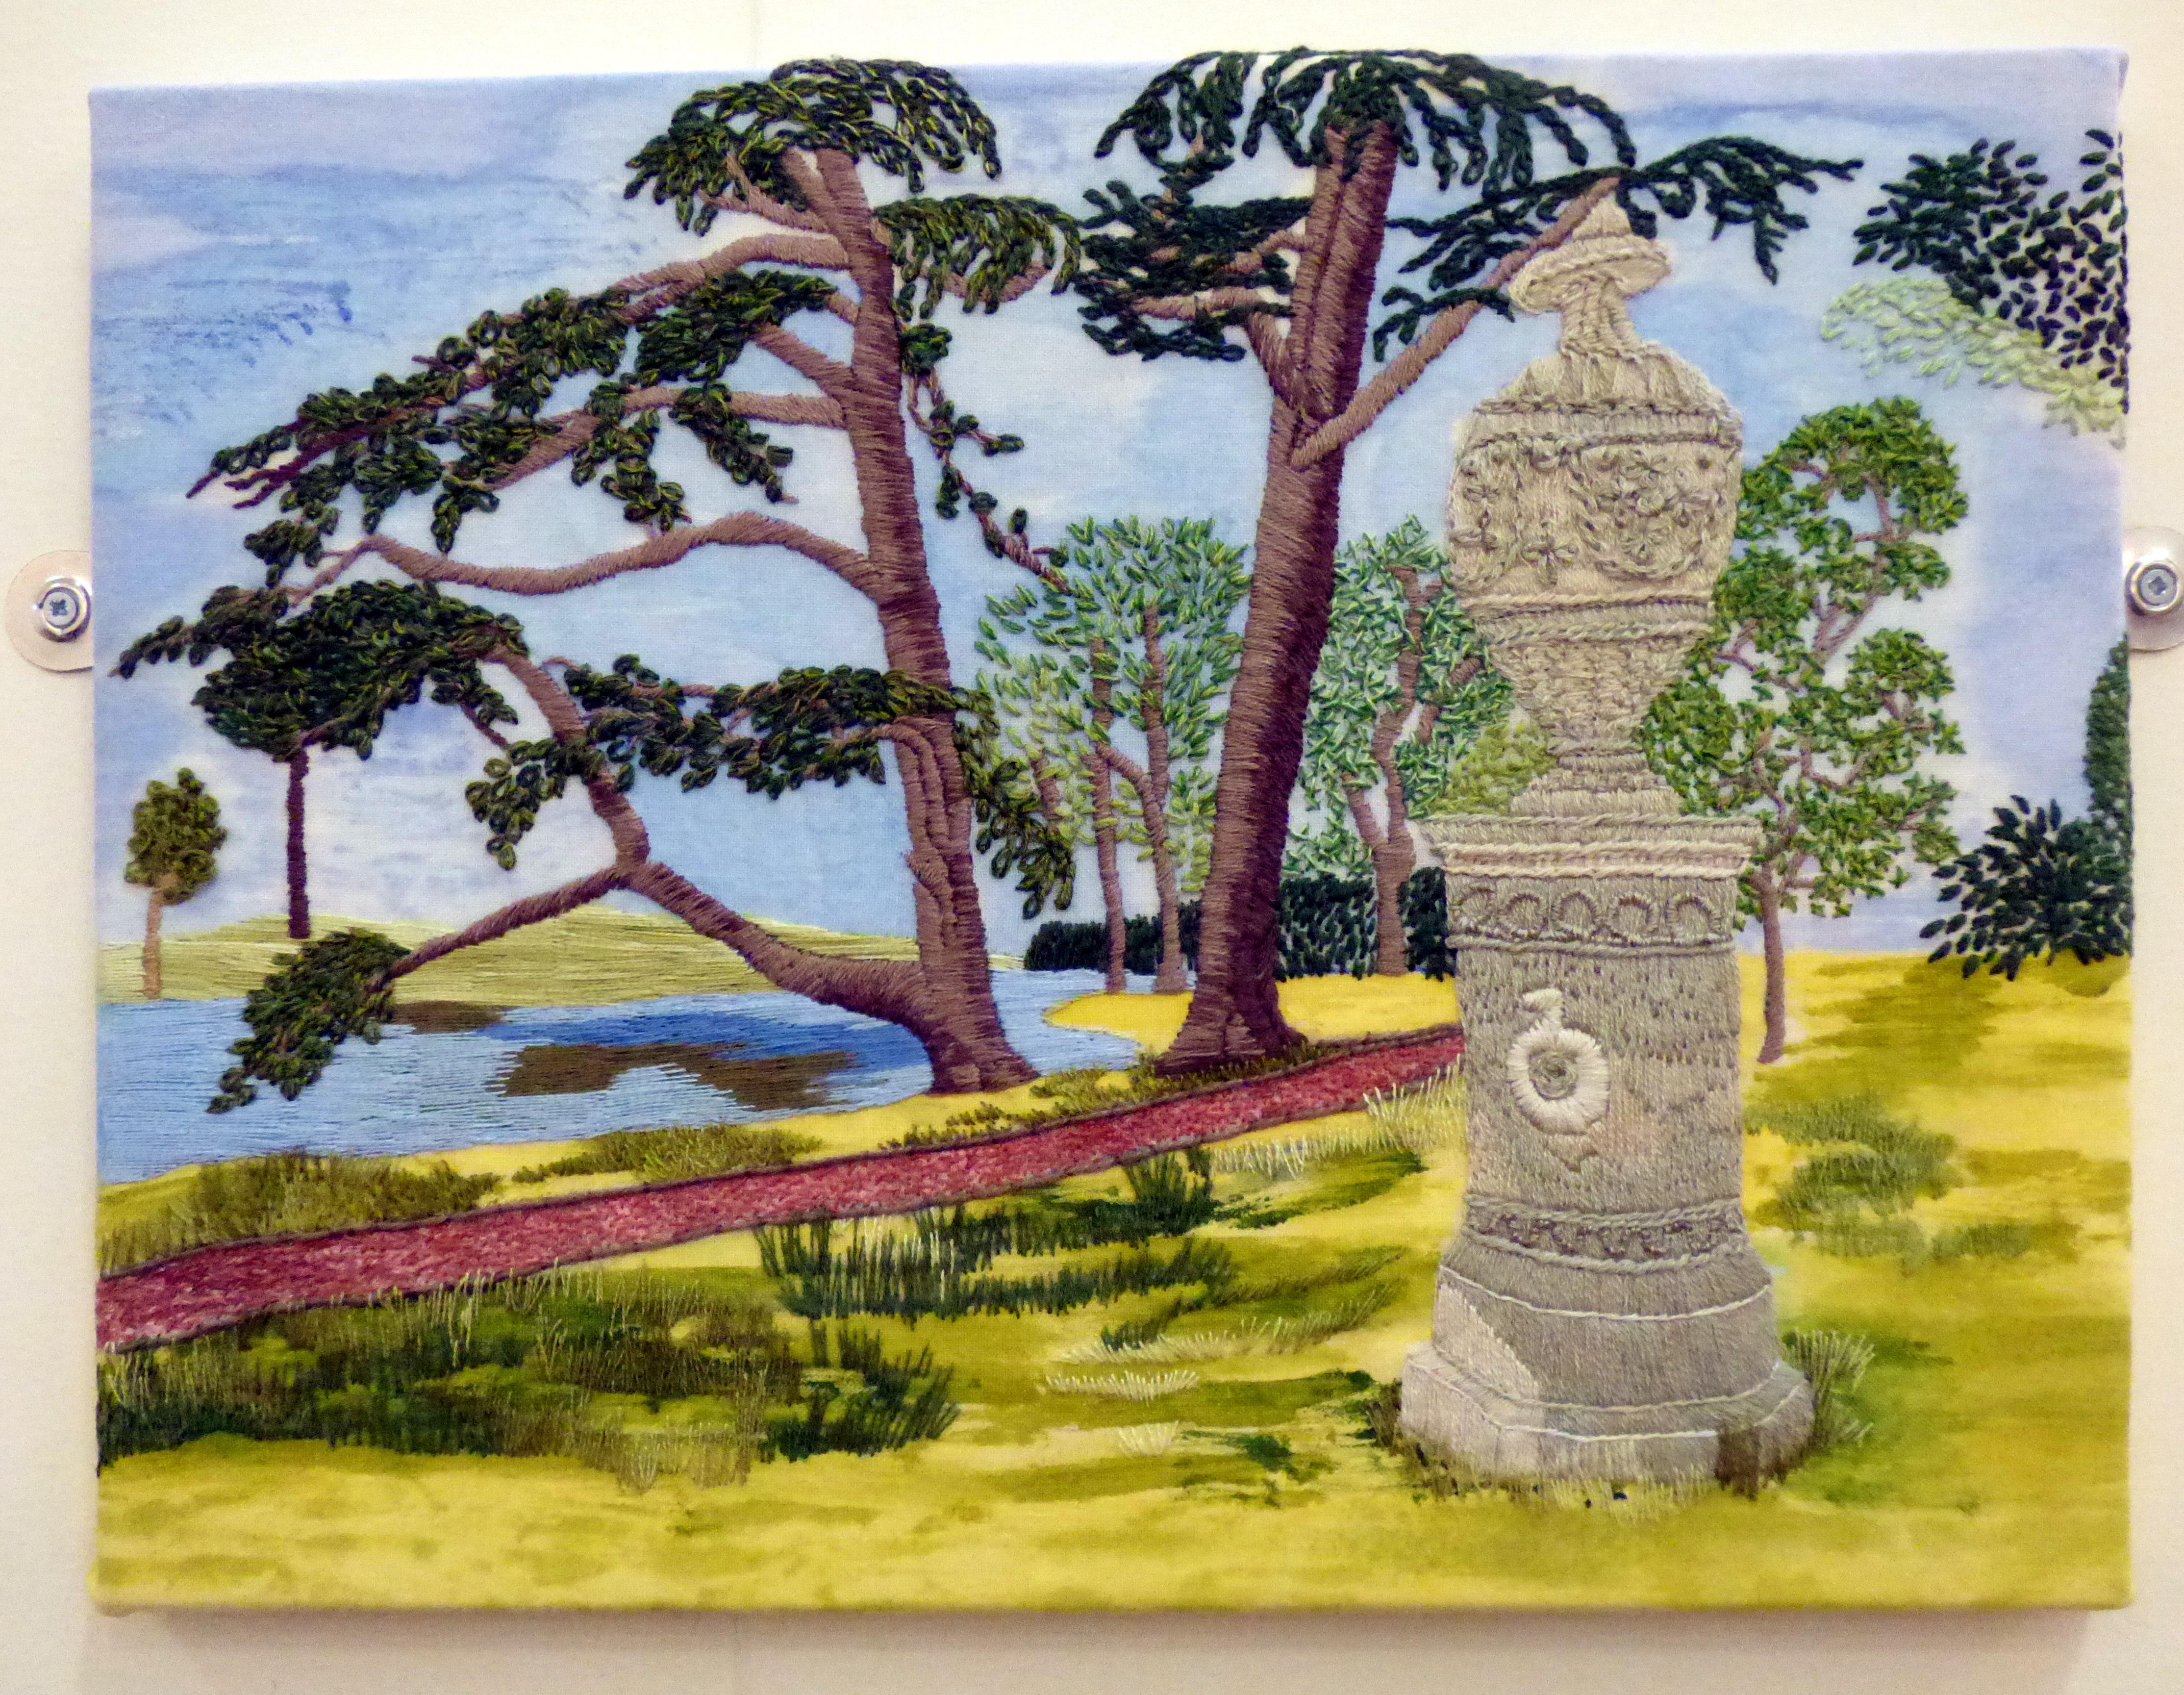 CROOME PARK by Suzanne Gilbert, Glossop & District EG, hand stitch